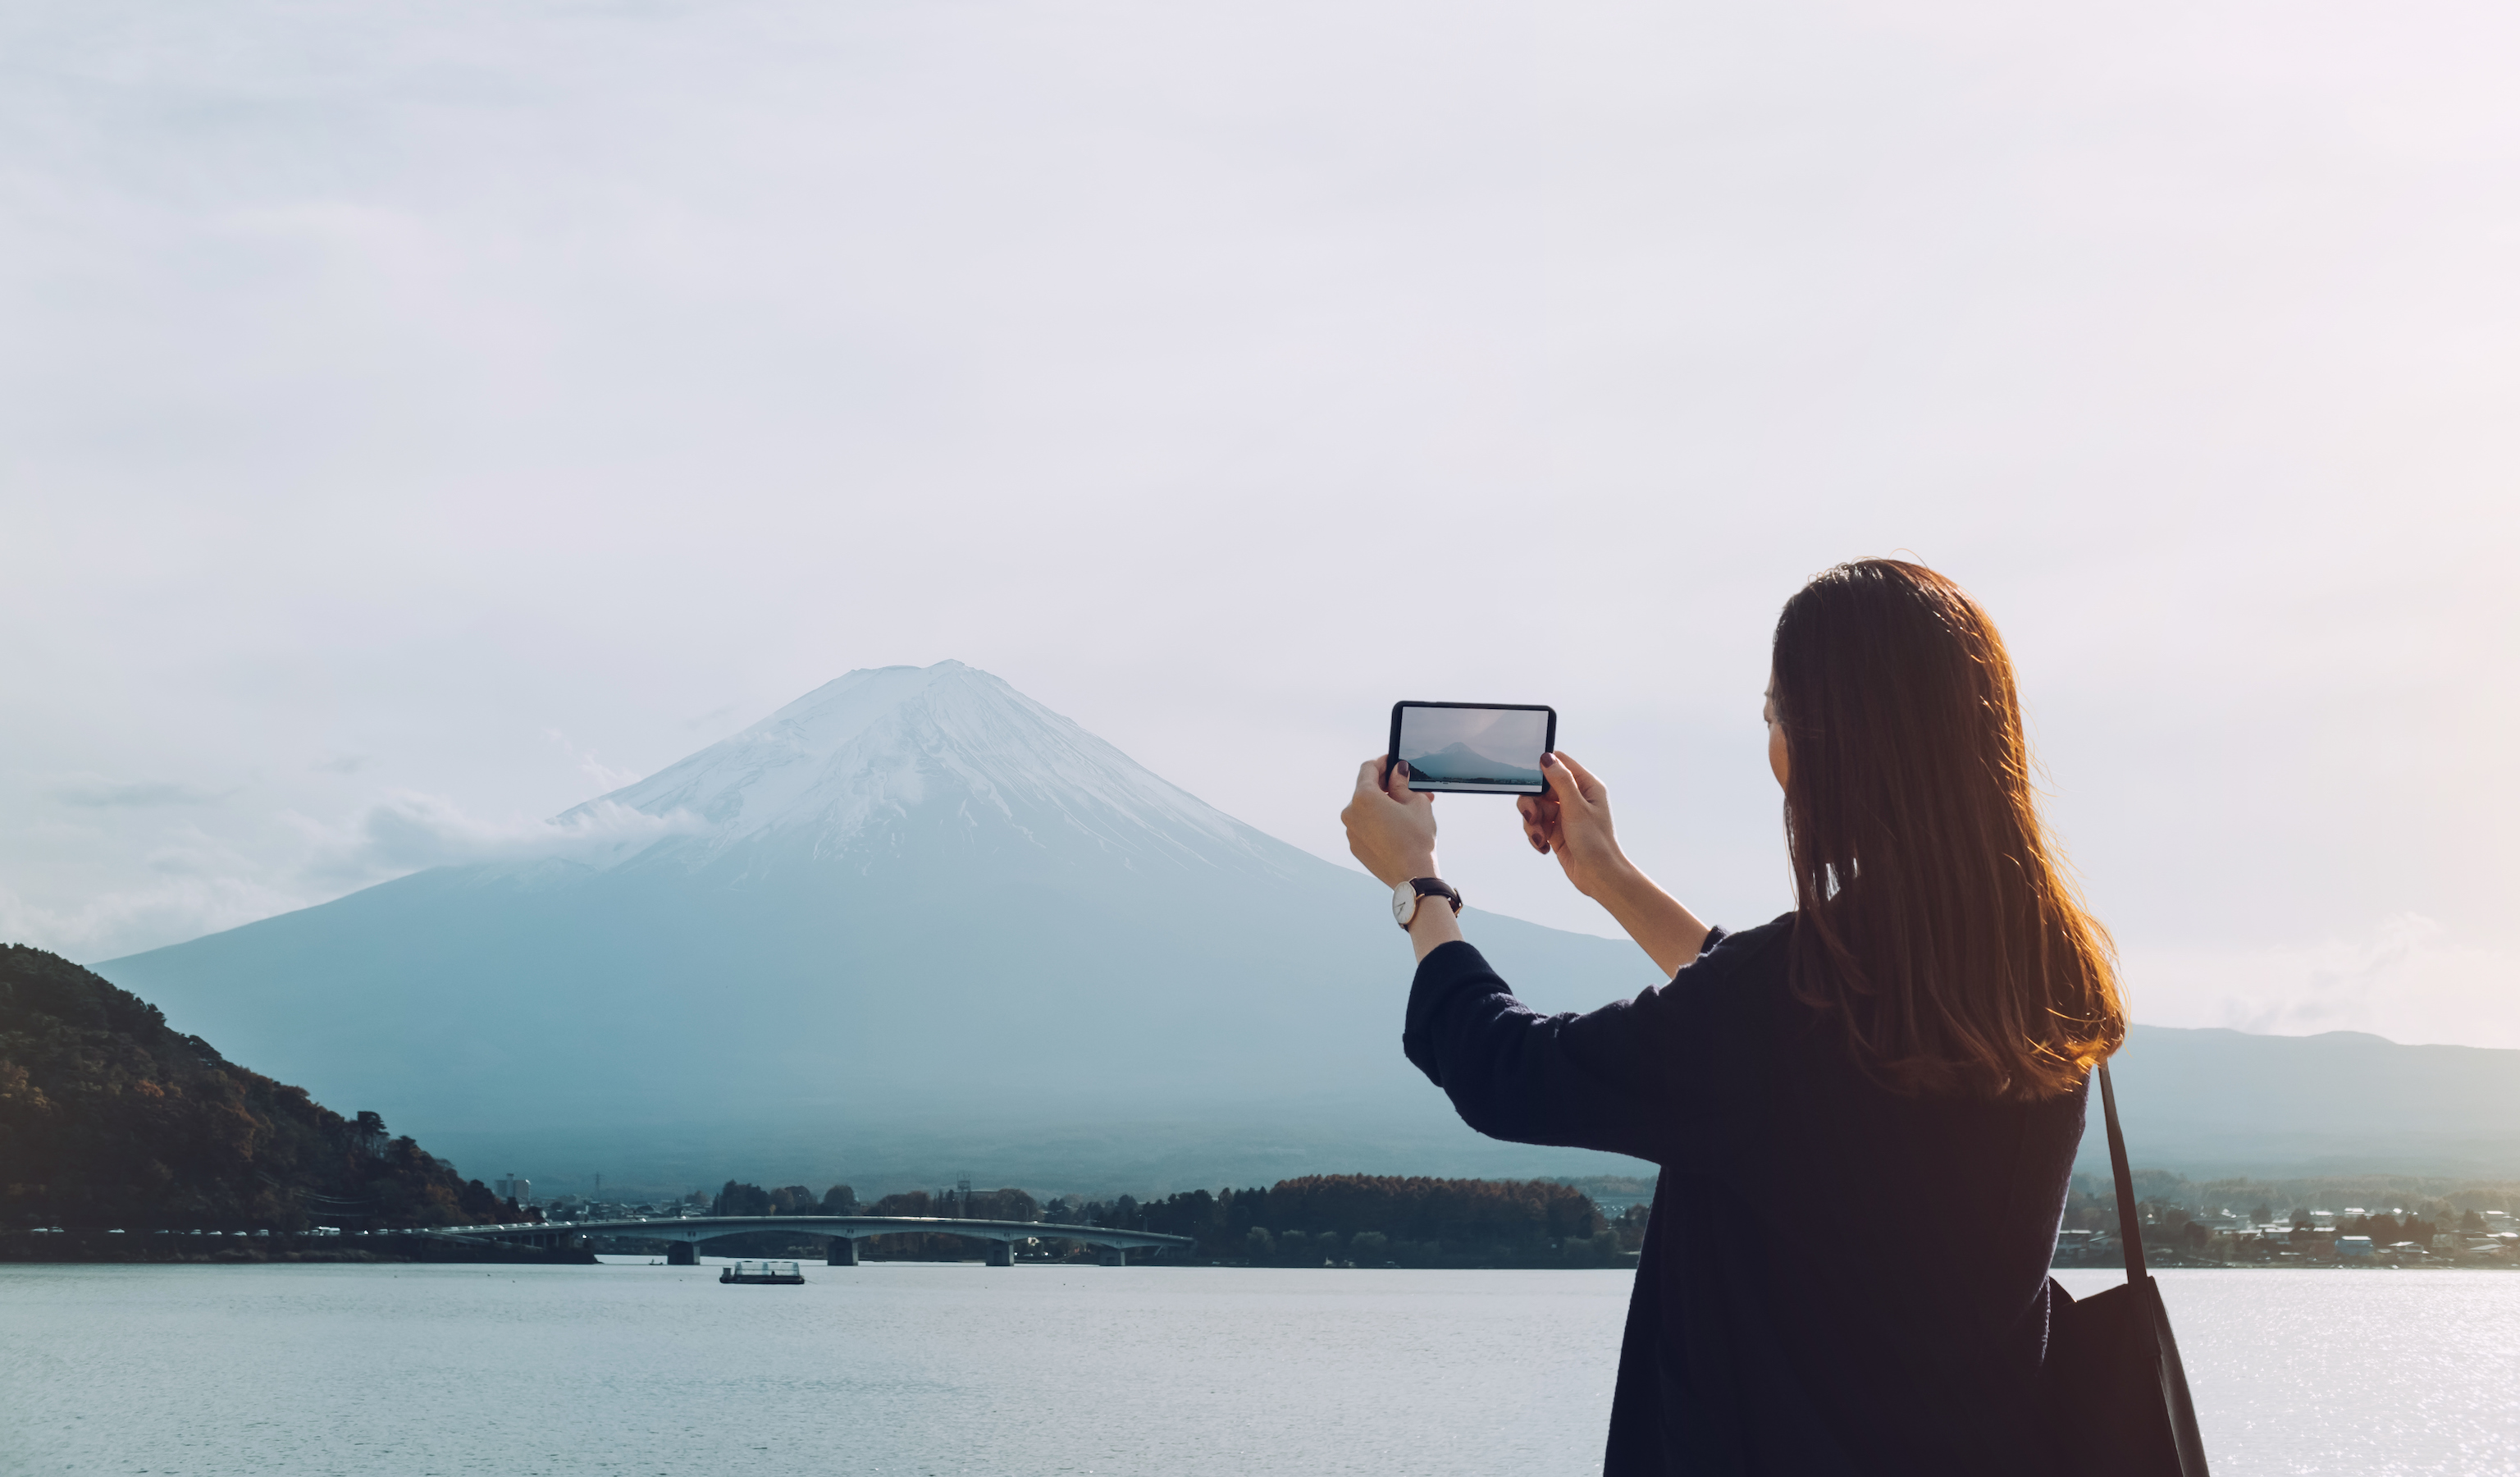 Woman taking photo of Mt. Fuji in Japan